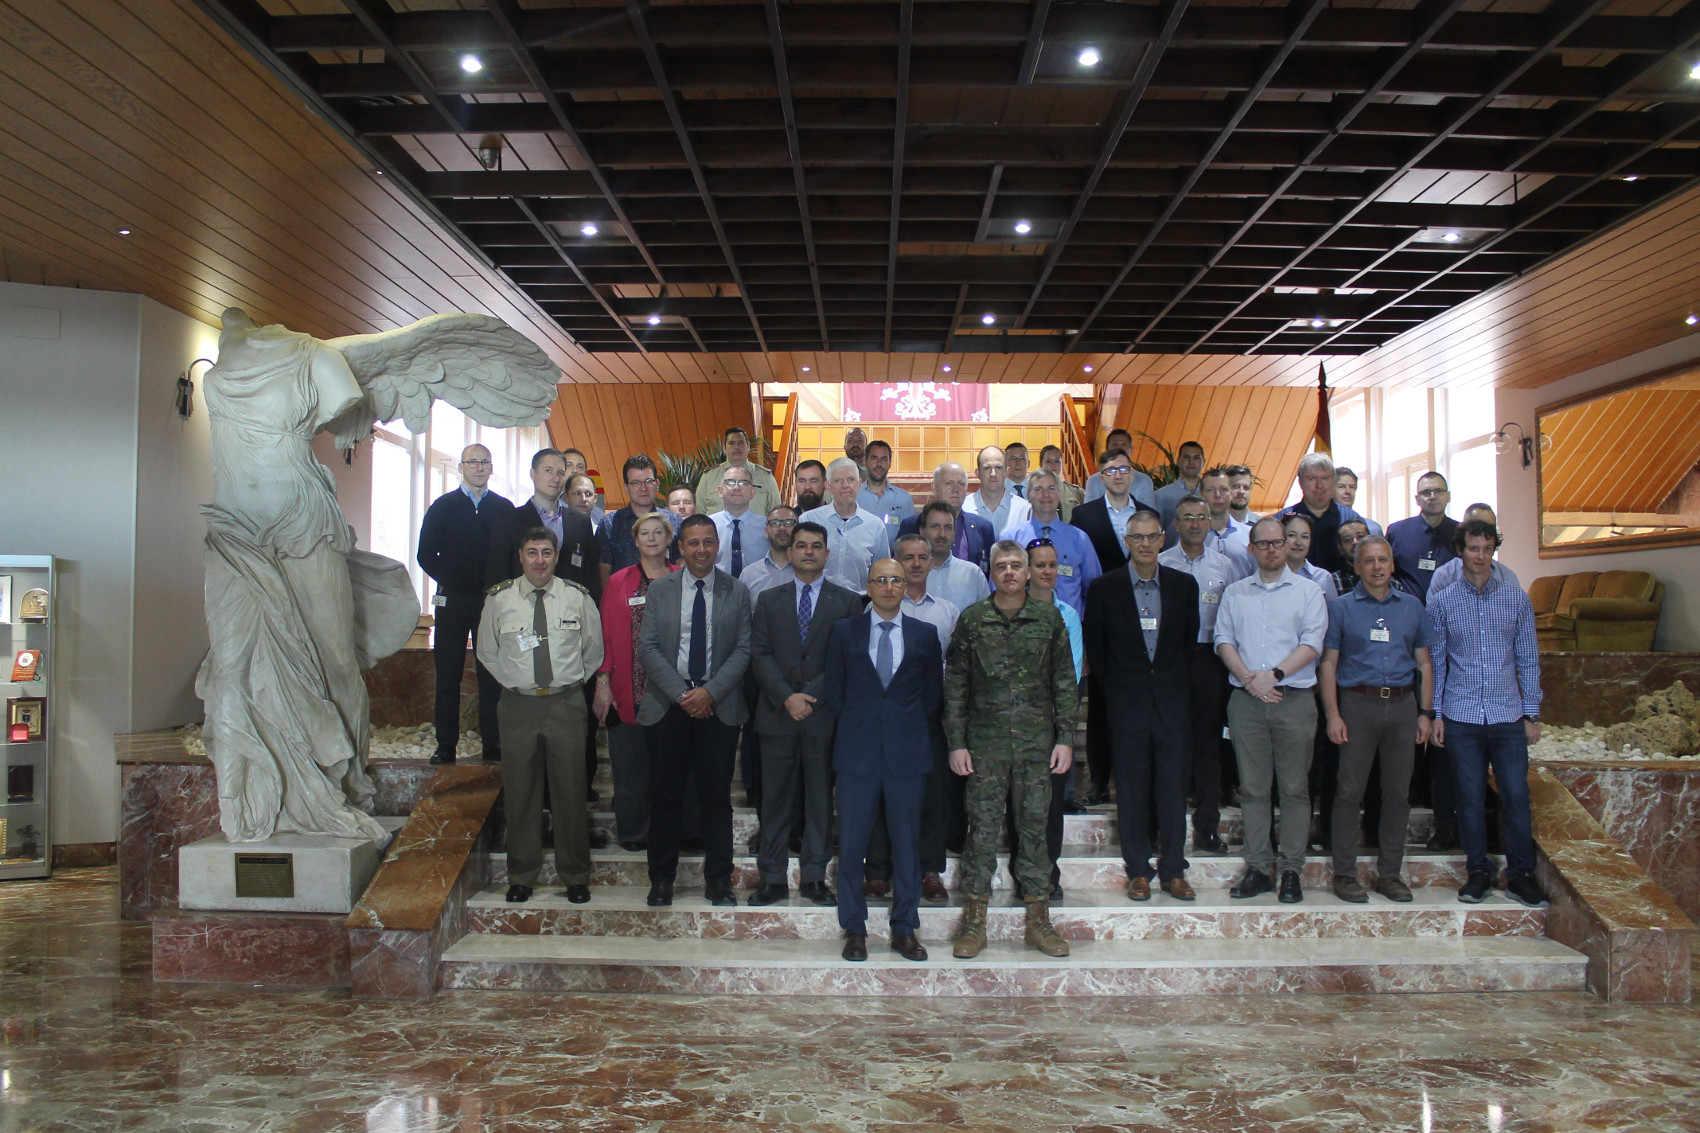 Holding of the meeting of the FMN NATO Security Group